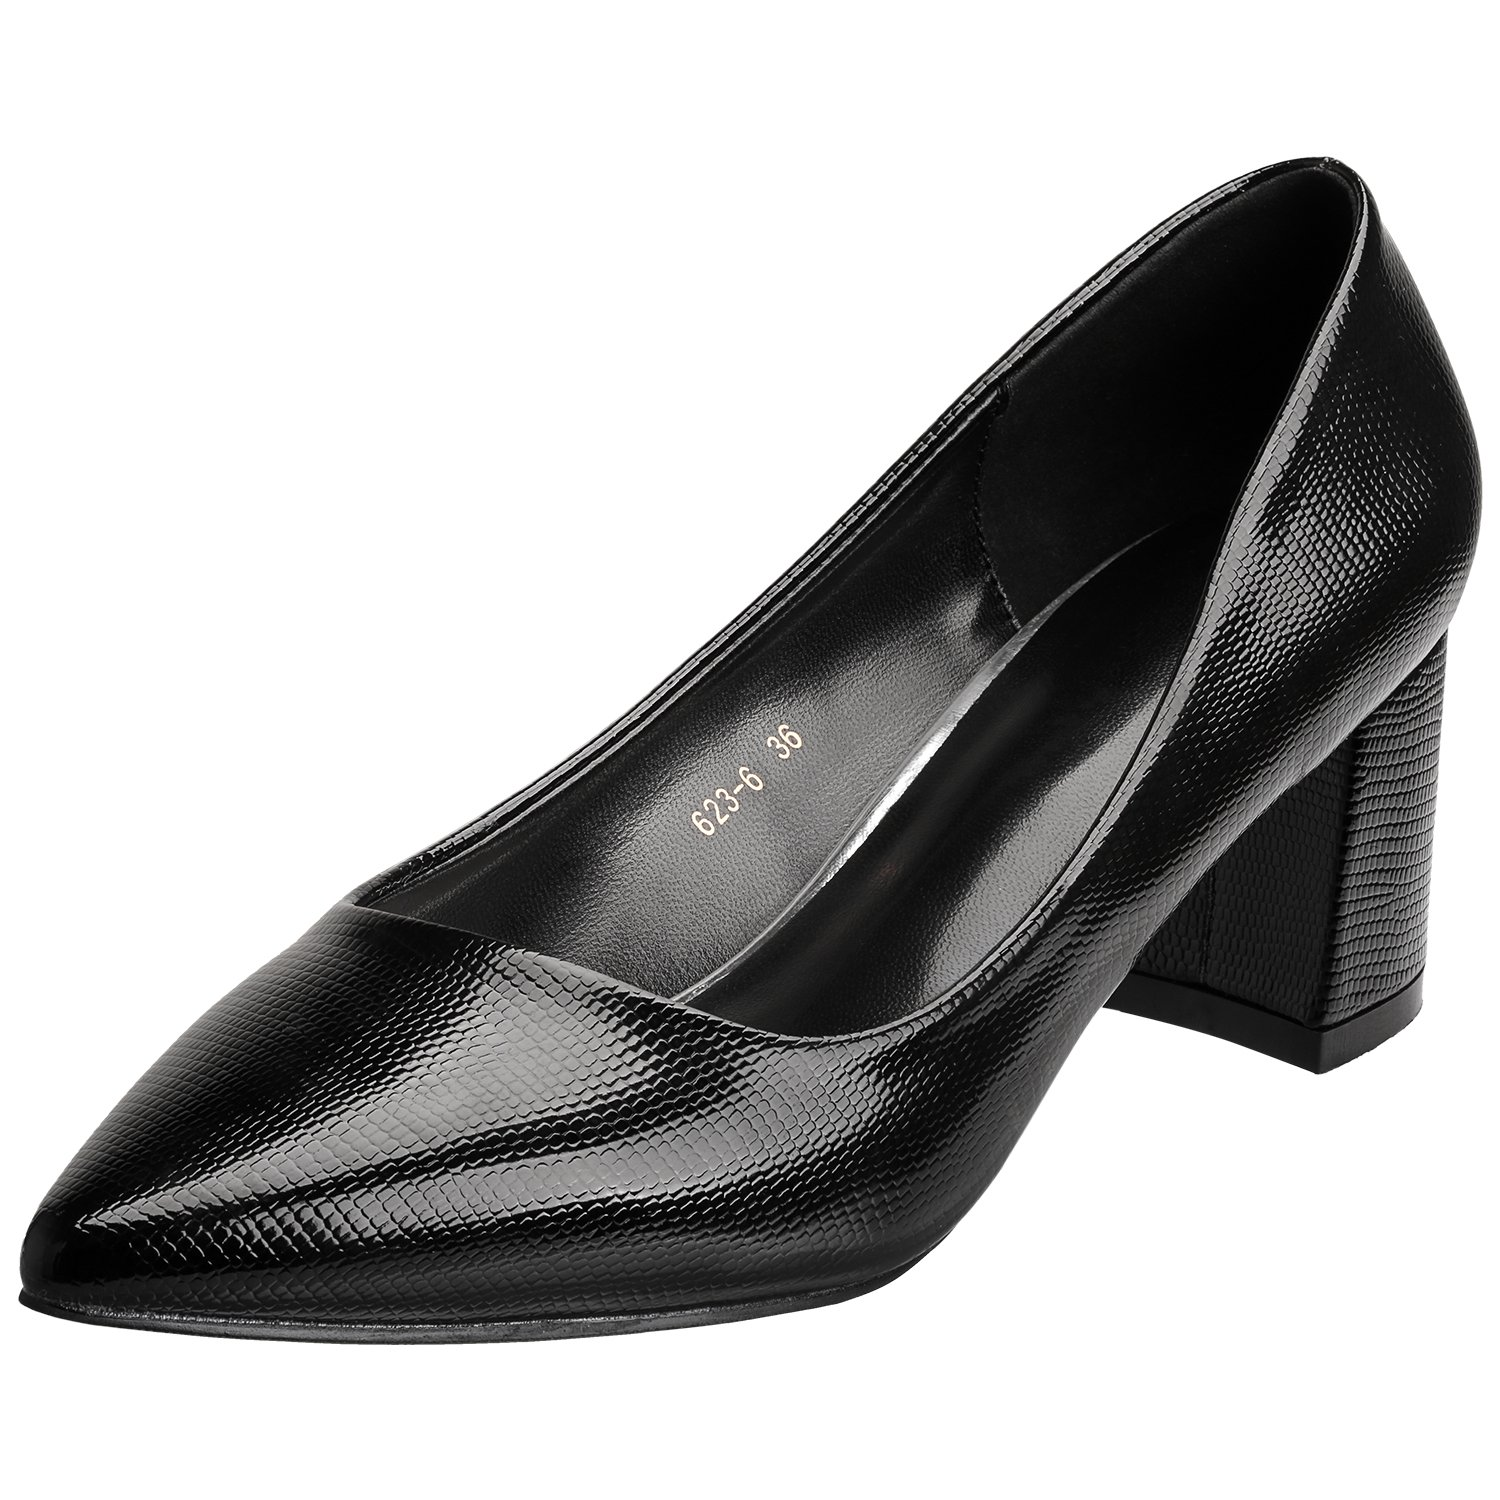 SANMIO Women Heels, Pumps Shoes for Women Fashion Slip On Pointed Toe Low Heel Bridal Wedding Party Pumps (8 B(M) US = Lable 39, Black)